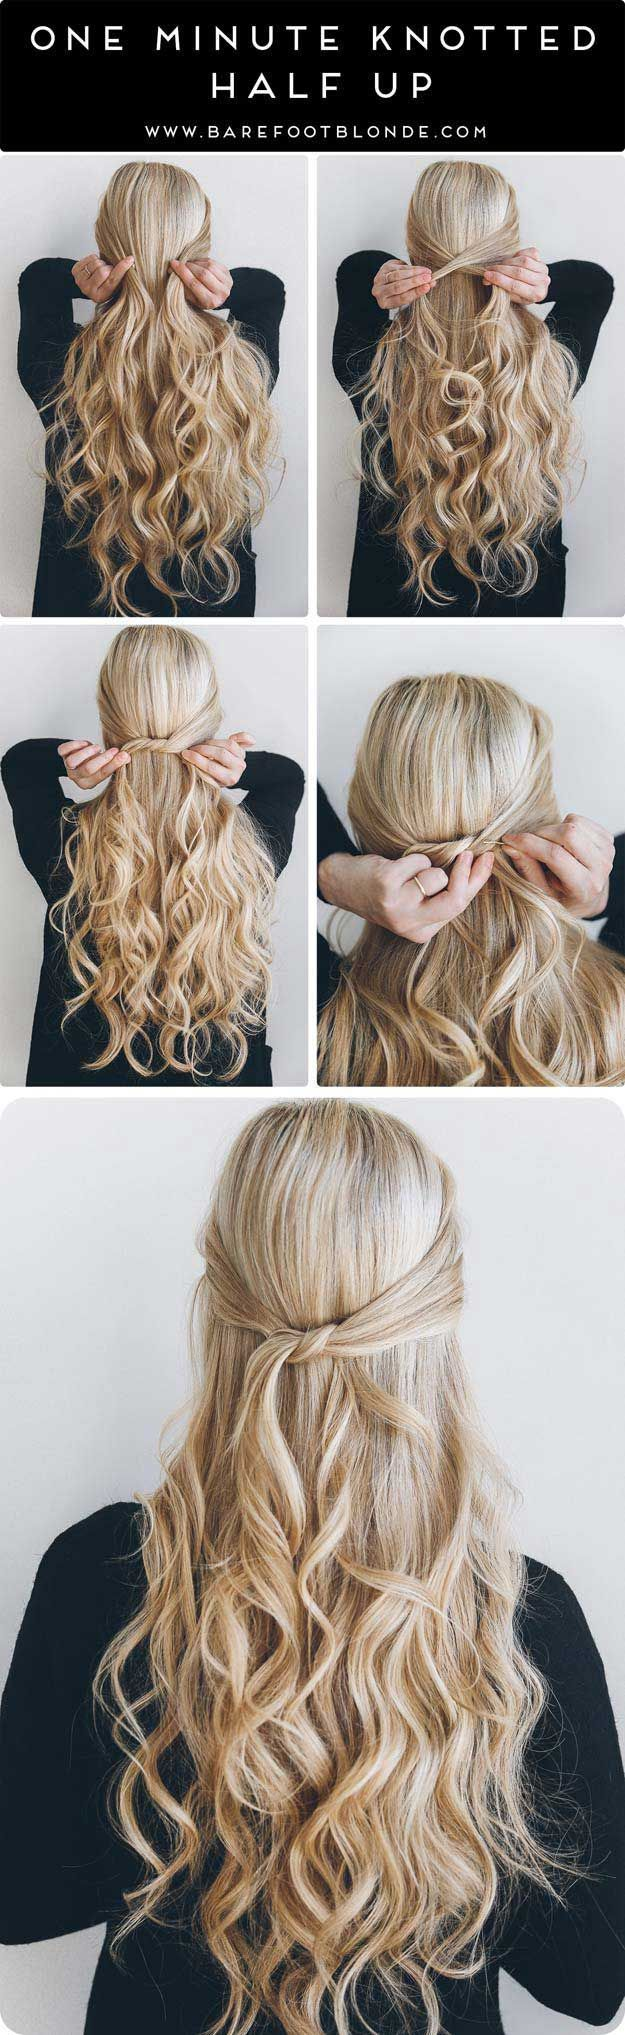 Amazing half uphalf down hairstyles for long hair one minute